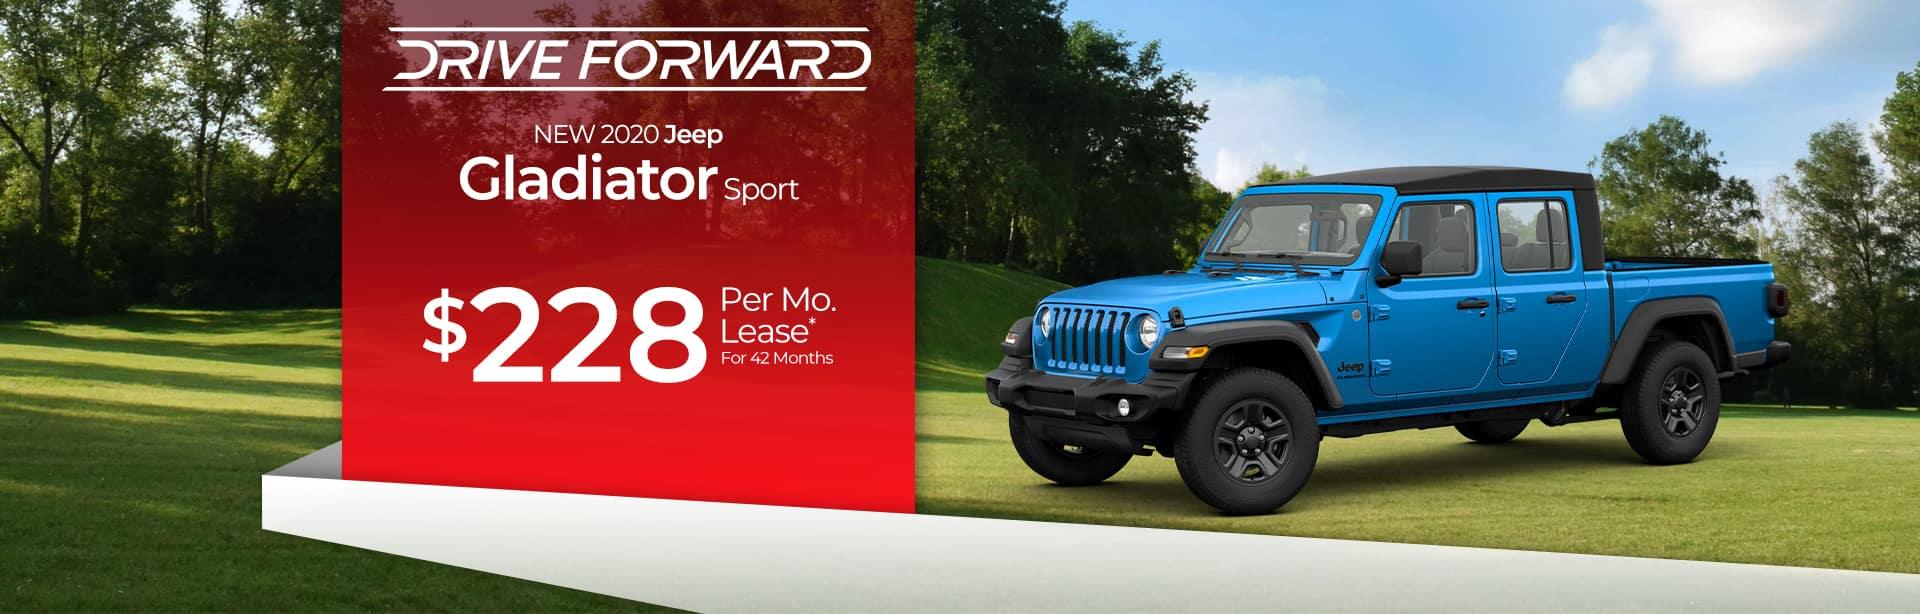 Lease a Jeep Gladiator for $228 a month near Kendallville, Indiana